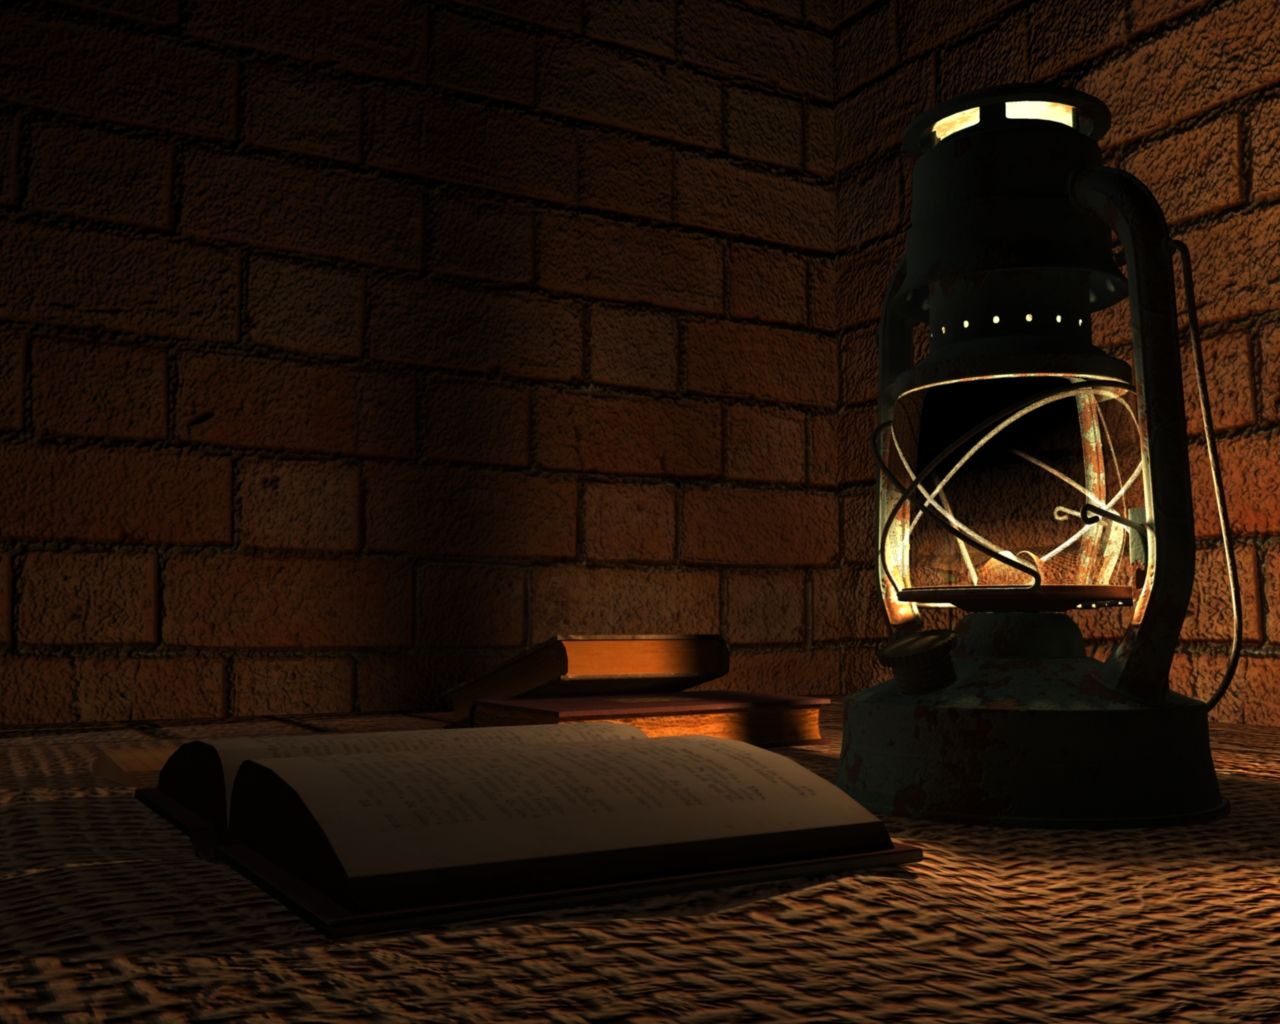 Lantern study  Modelling Texturing Lighting Rendering u0026 Compositing using Autodesk Maya & Lantern study